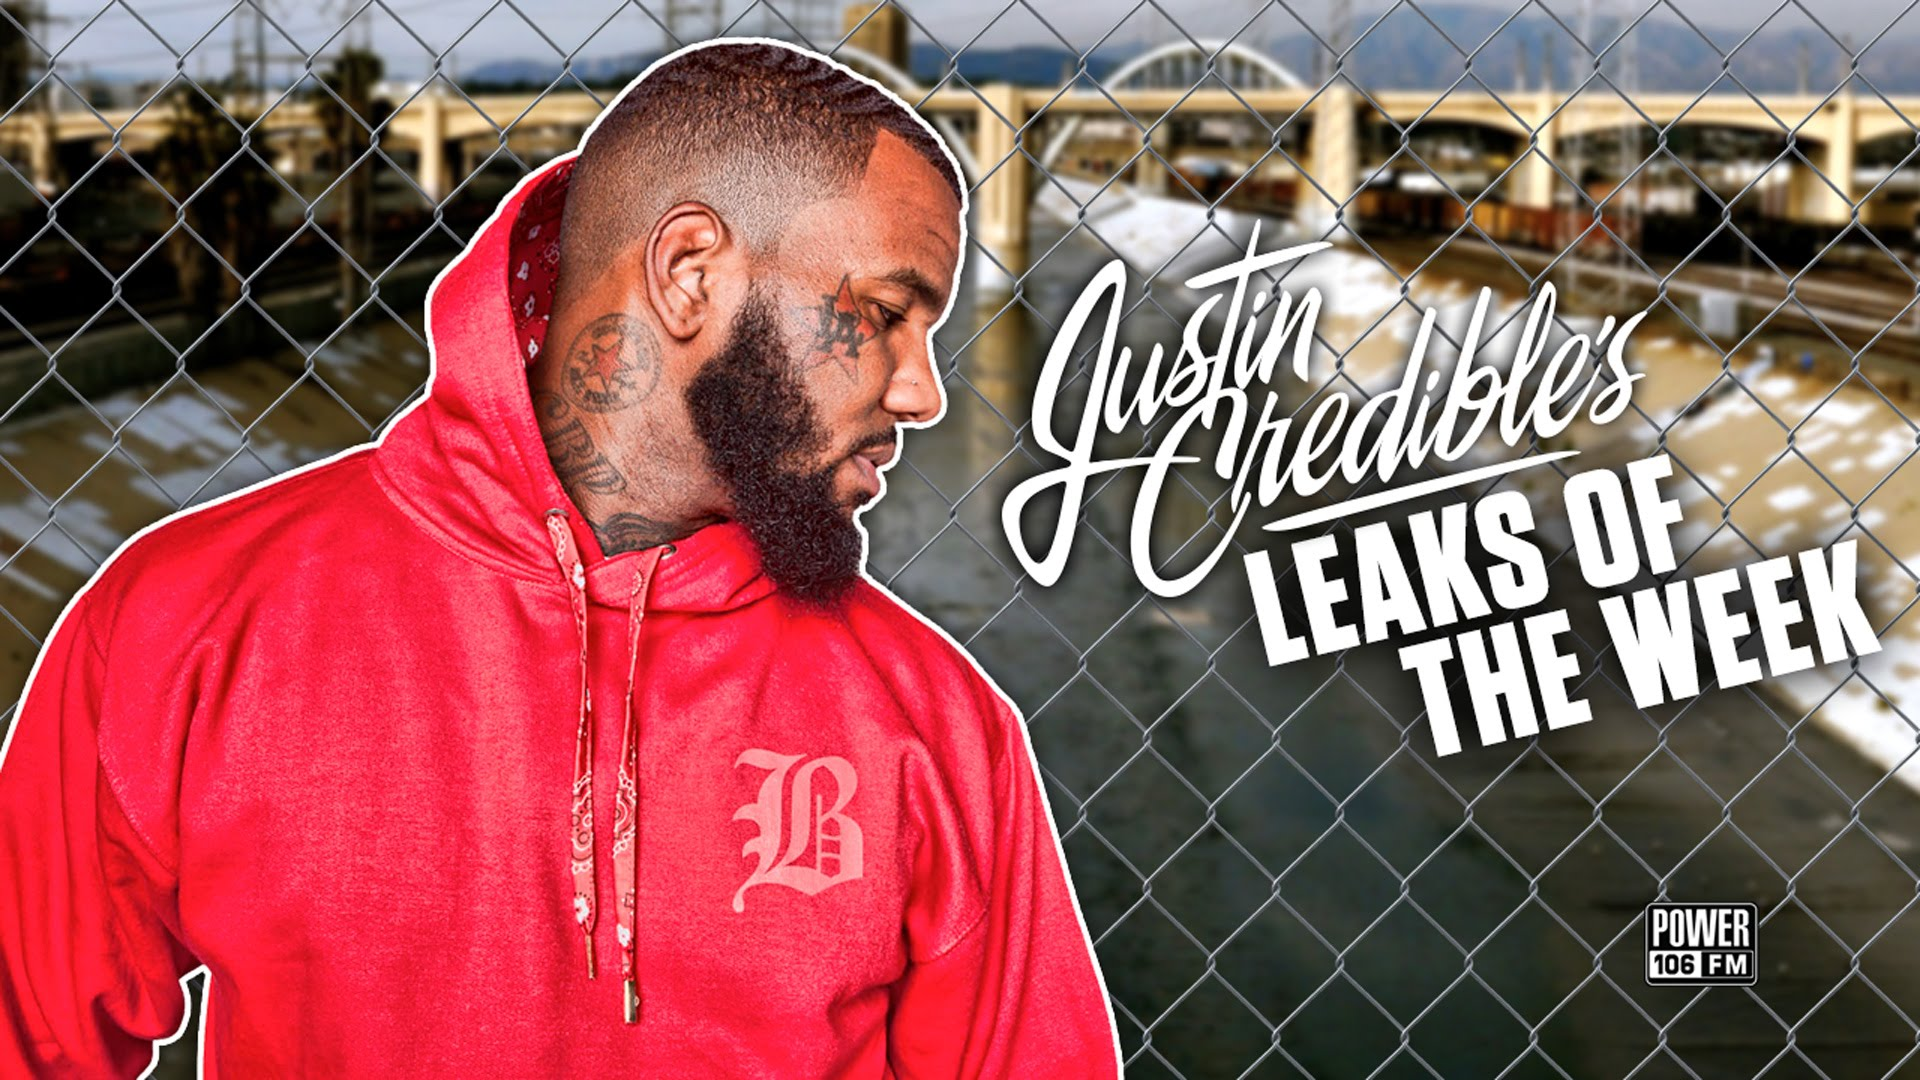 Justin Credible's #LeaksOfTheLeak w/ Rick Ross, The Game, Tinashe, Mac Miller (Video)